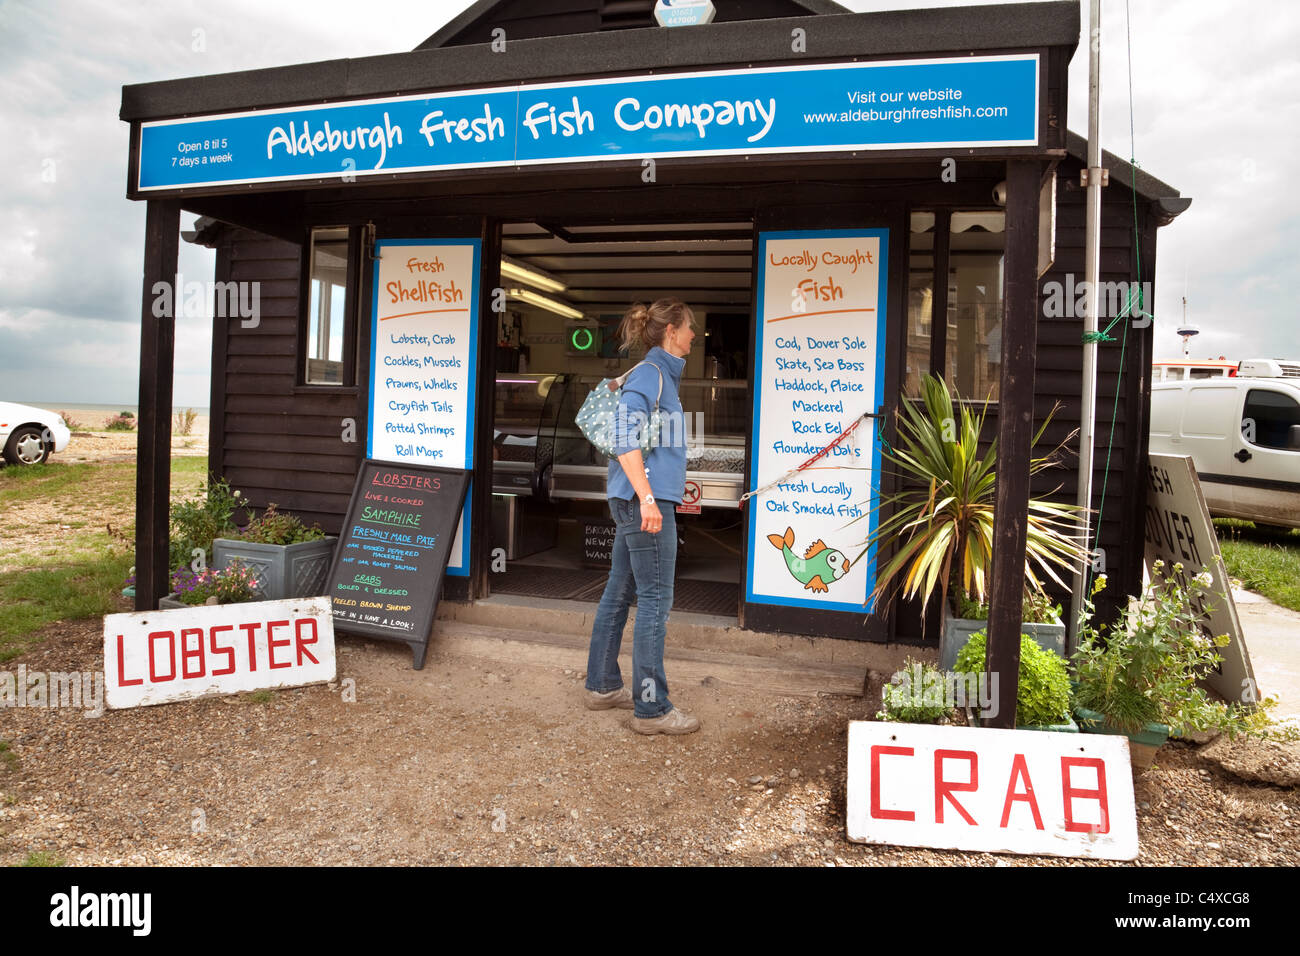 Fish stall uk stock photos fish stall uk stock images for The fresh fish company